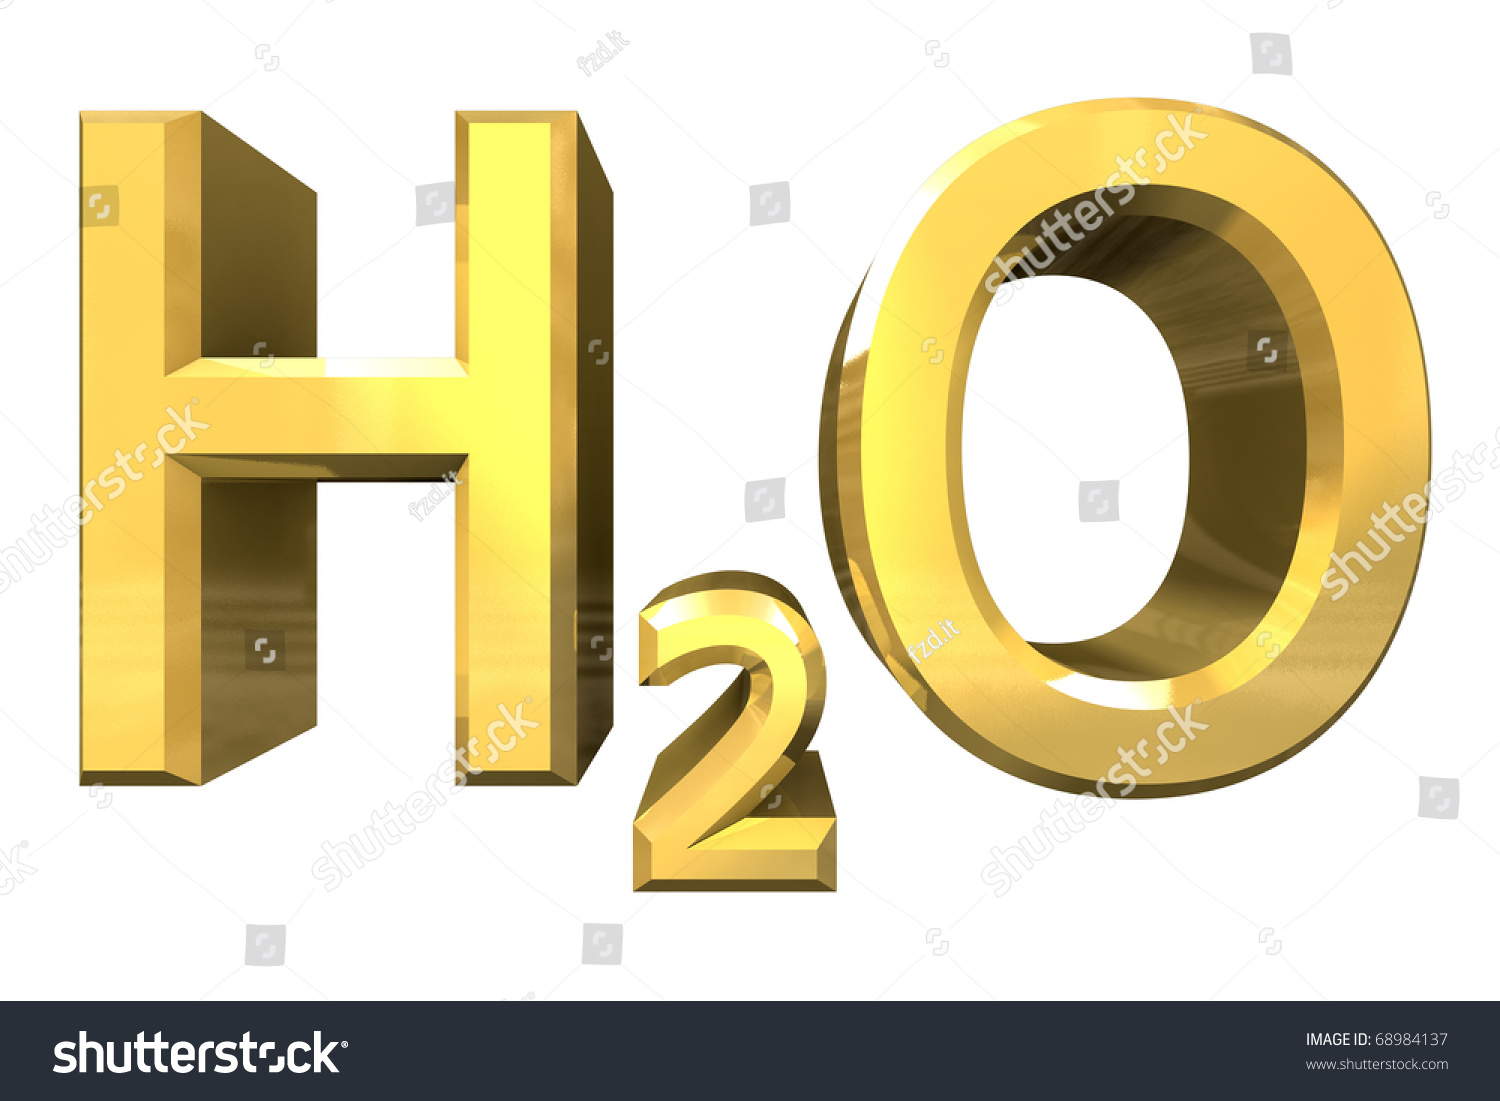 H2o water chemical symbol stock illustration 68984137 shutterstock h2o water chemical symbol buycottarizona Choice Image